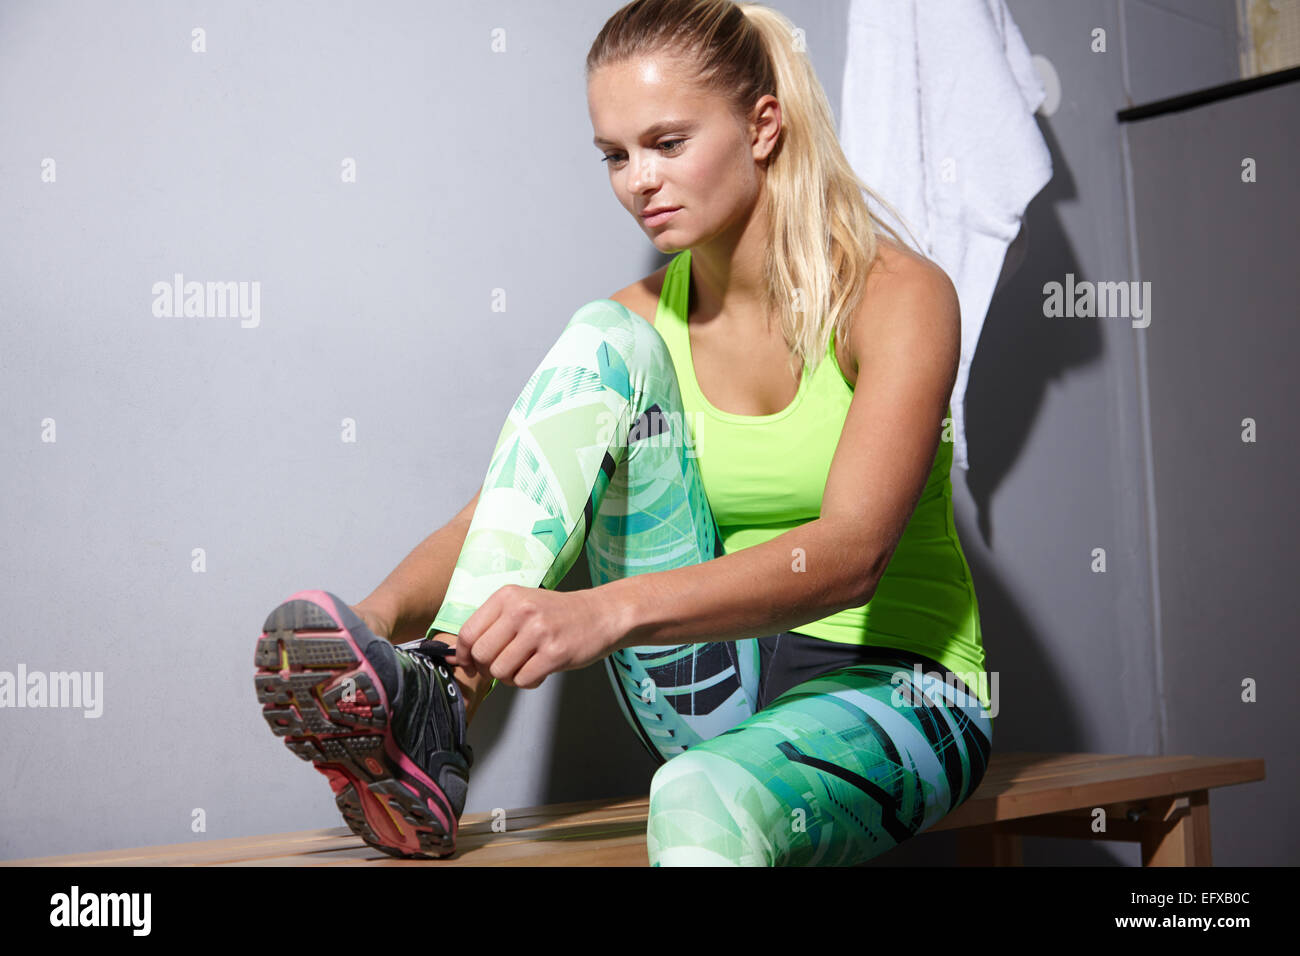 Portrait of young woman tying trainer laces in gym - Stock Image